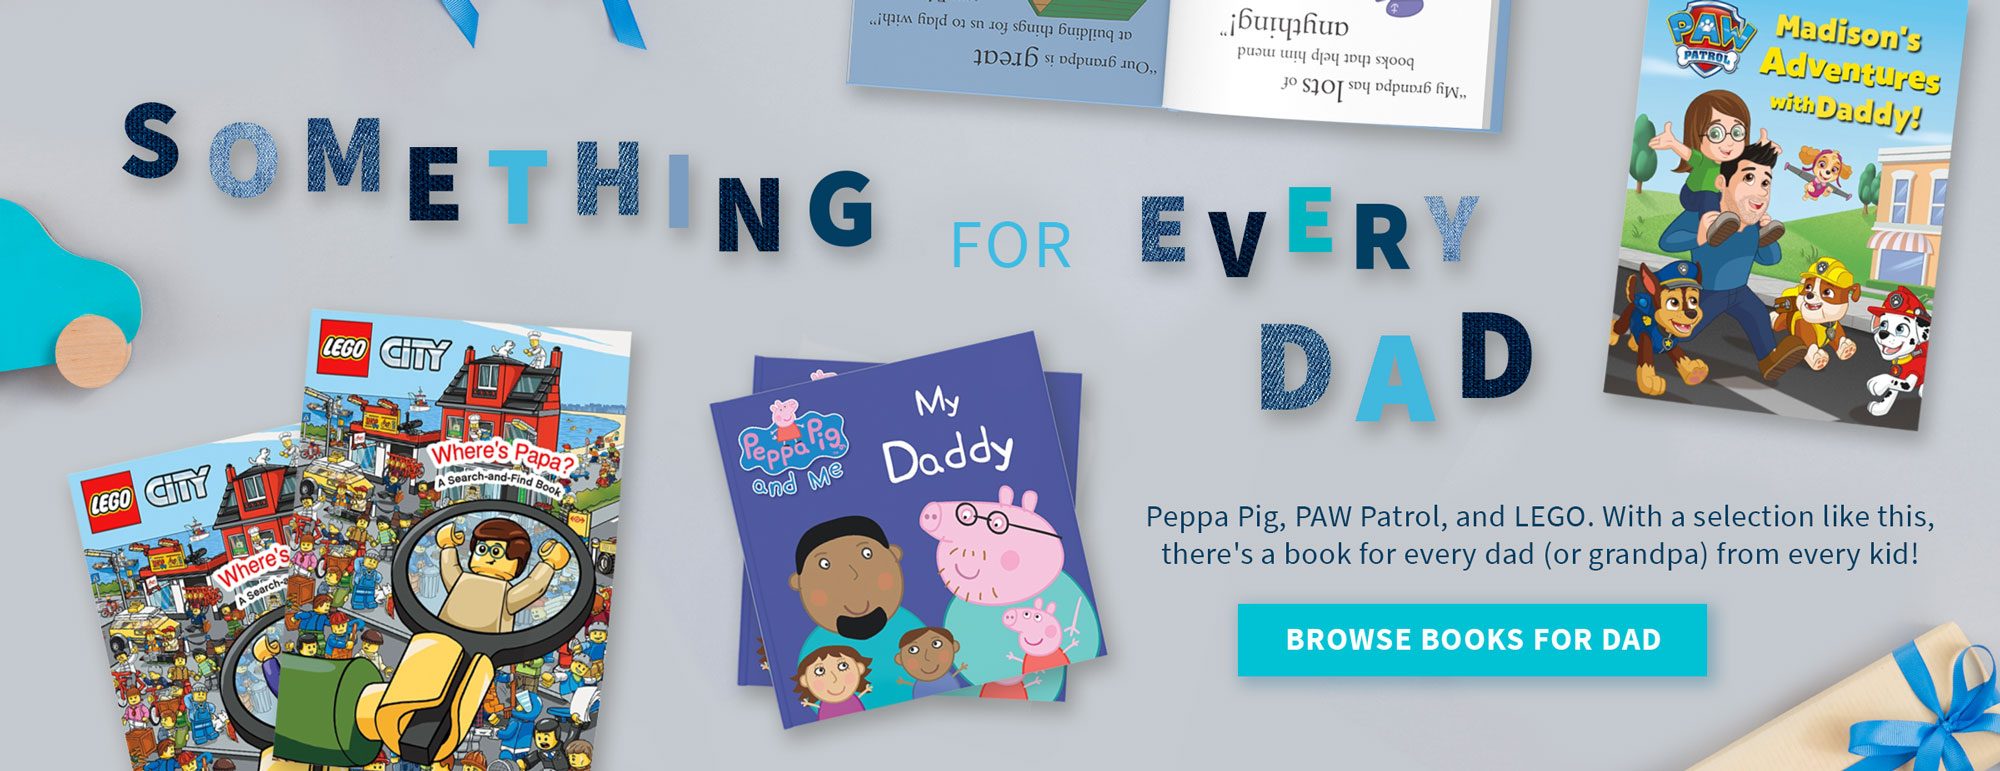 Personalized Father's Day books image